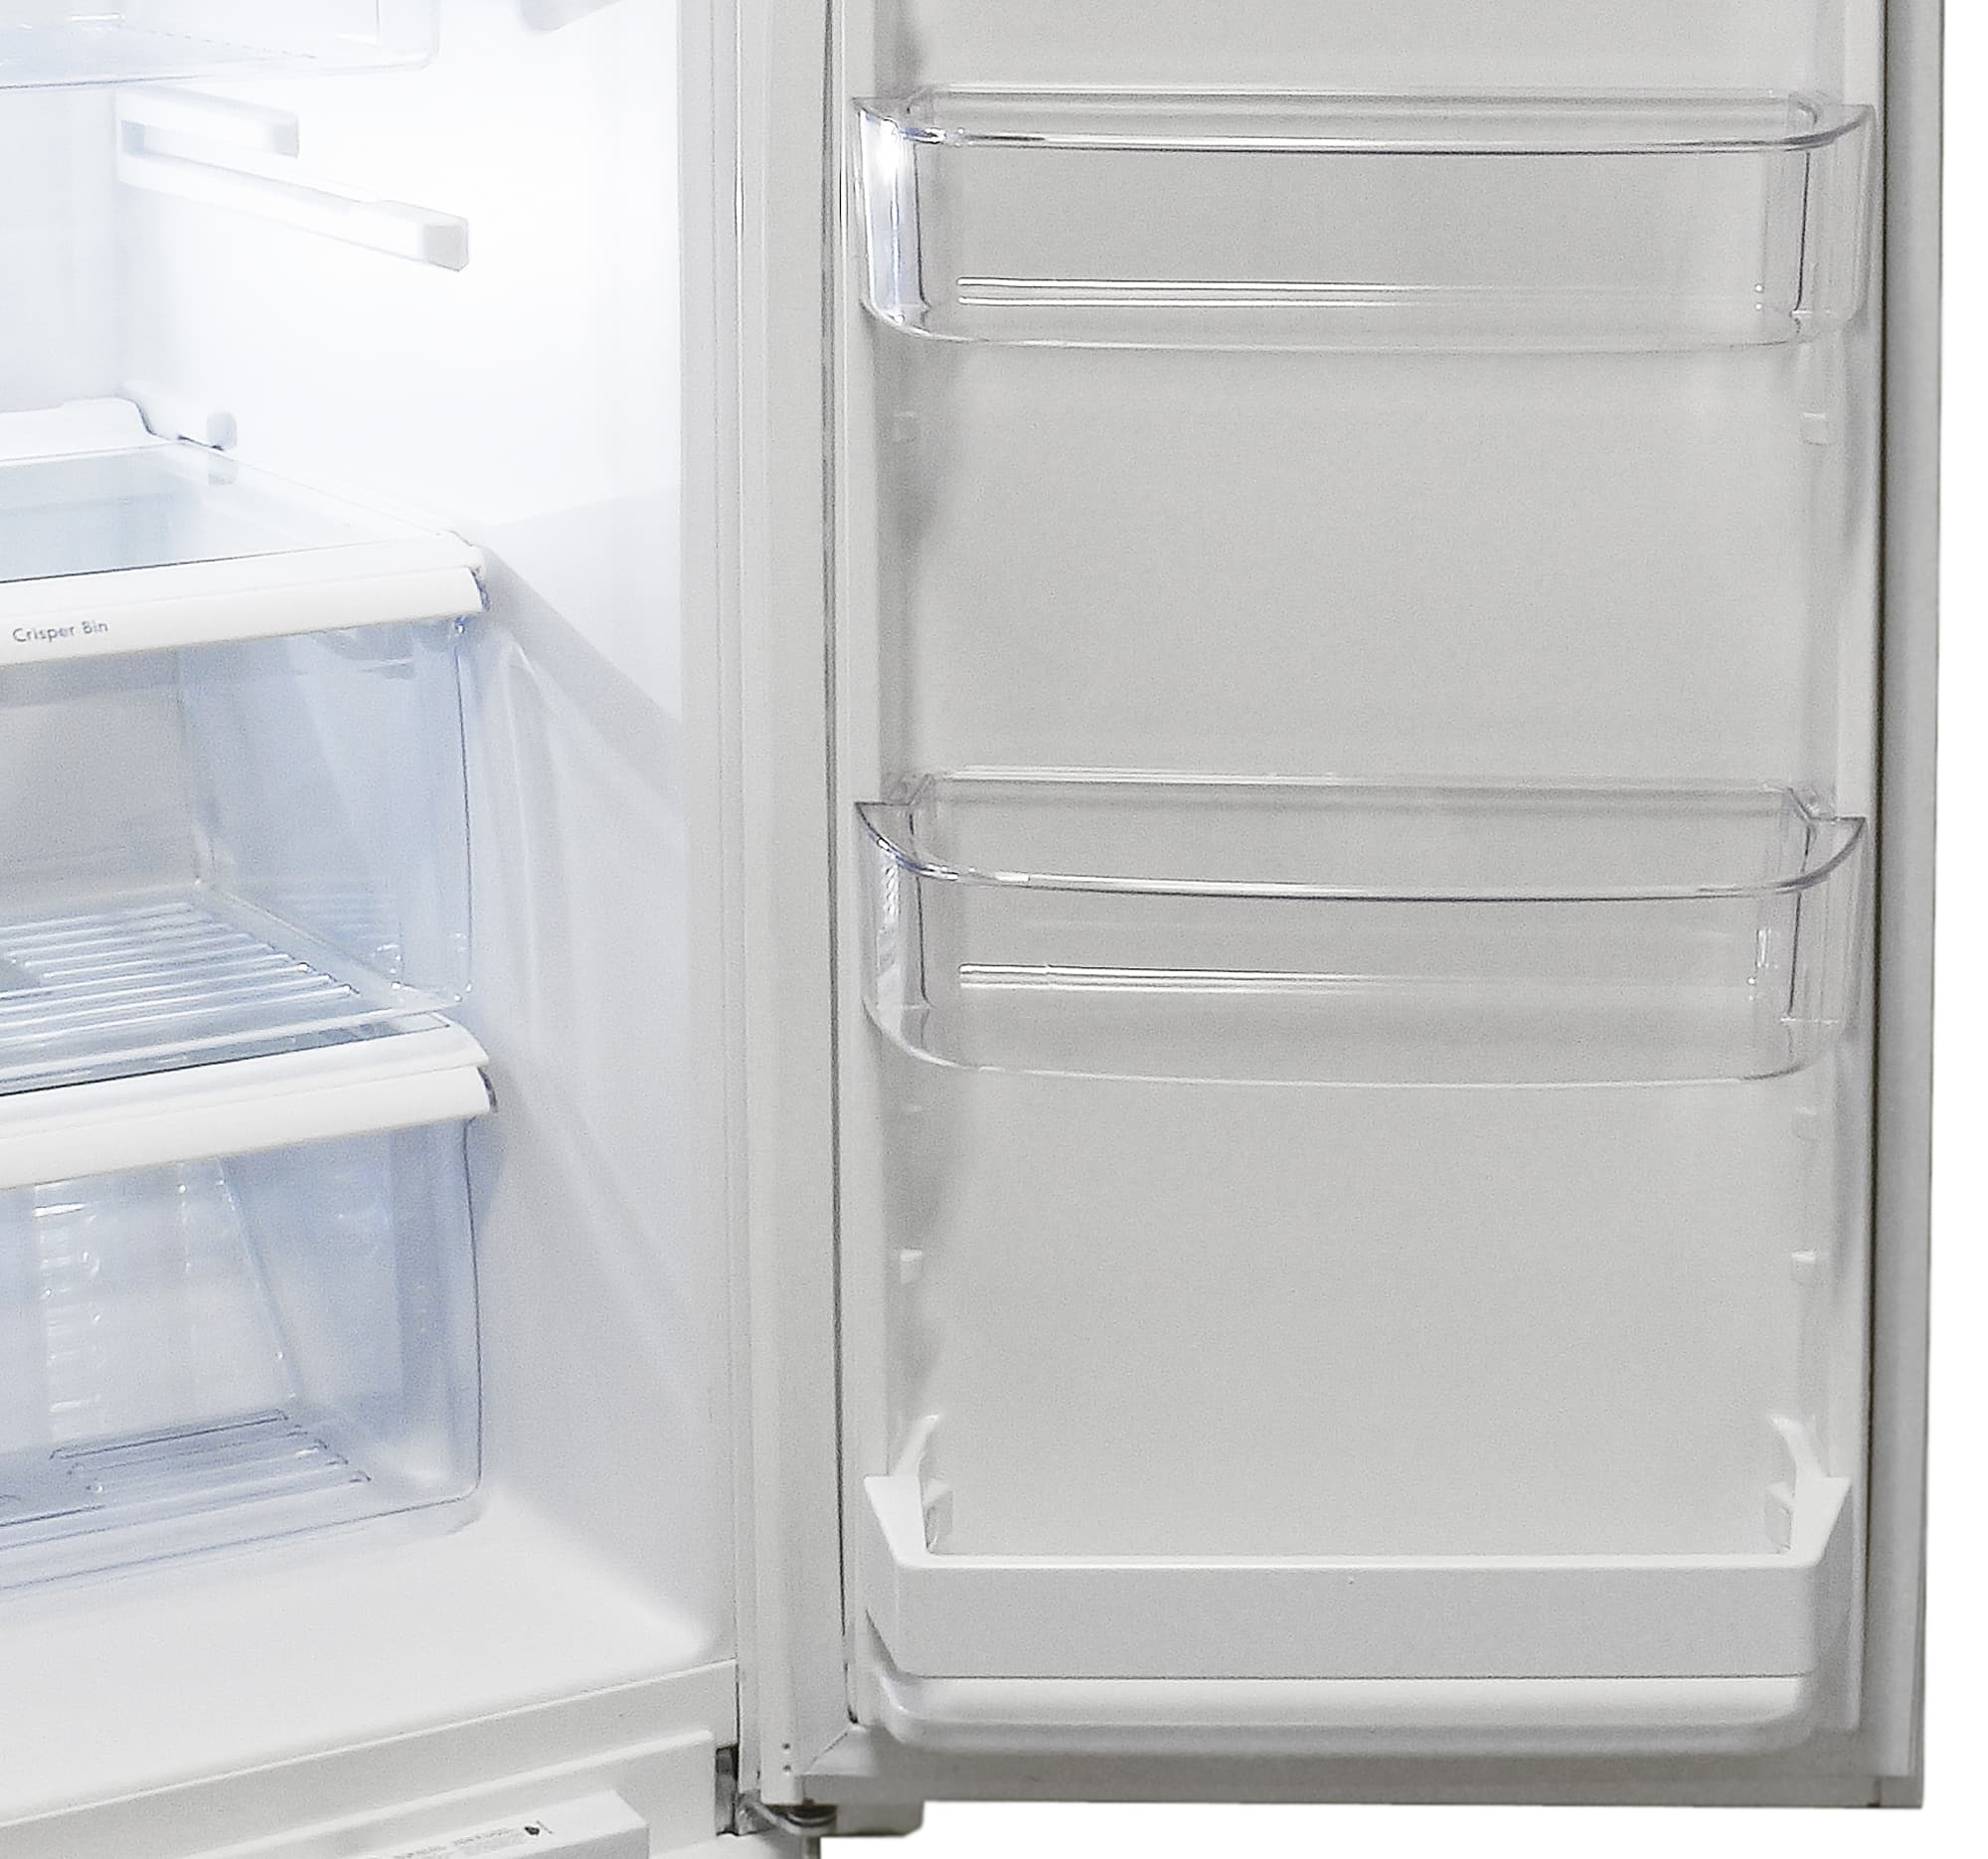 A fixed shelf at the bottom of the Kenmore 51122's fridge door balances out the dairy bin up top.